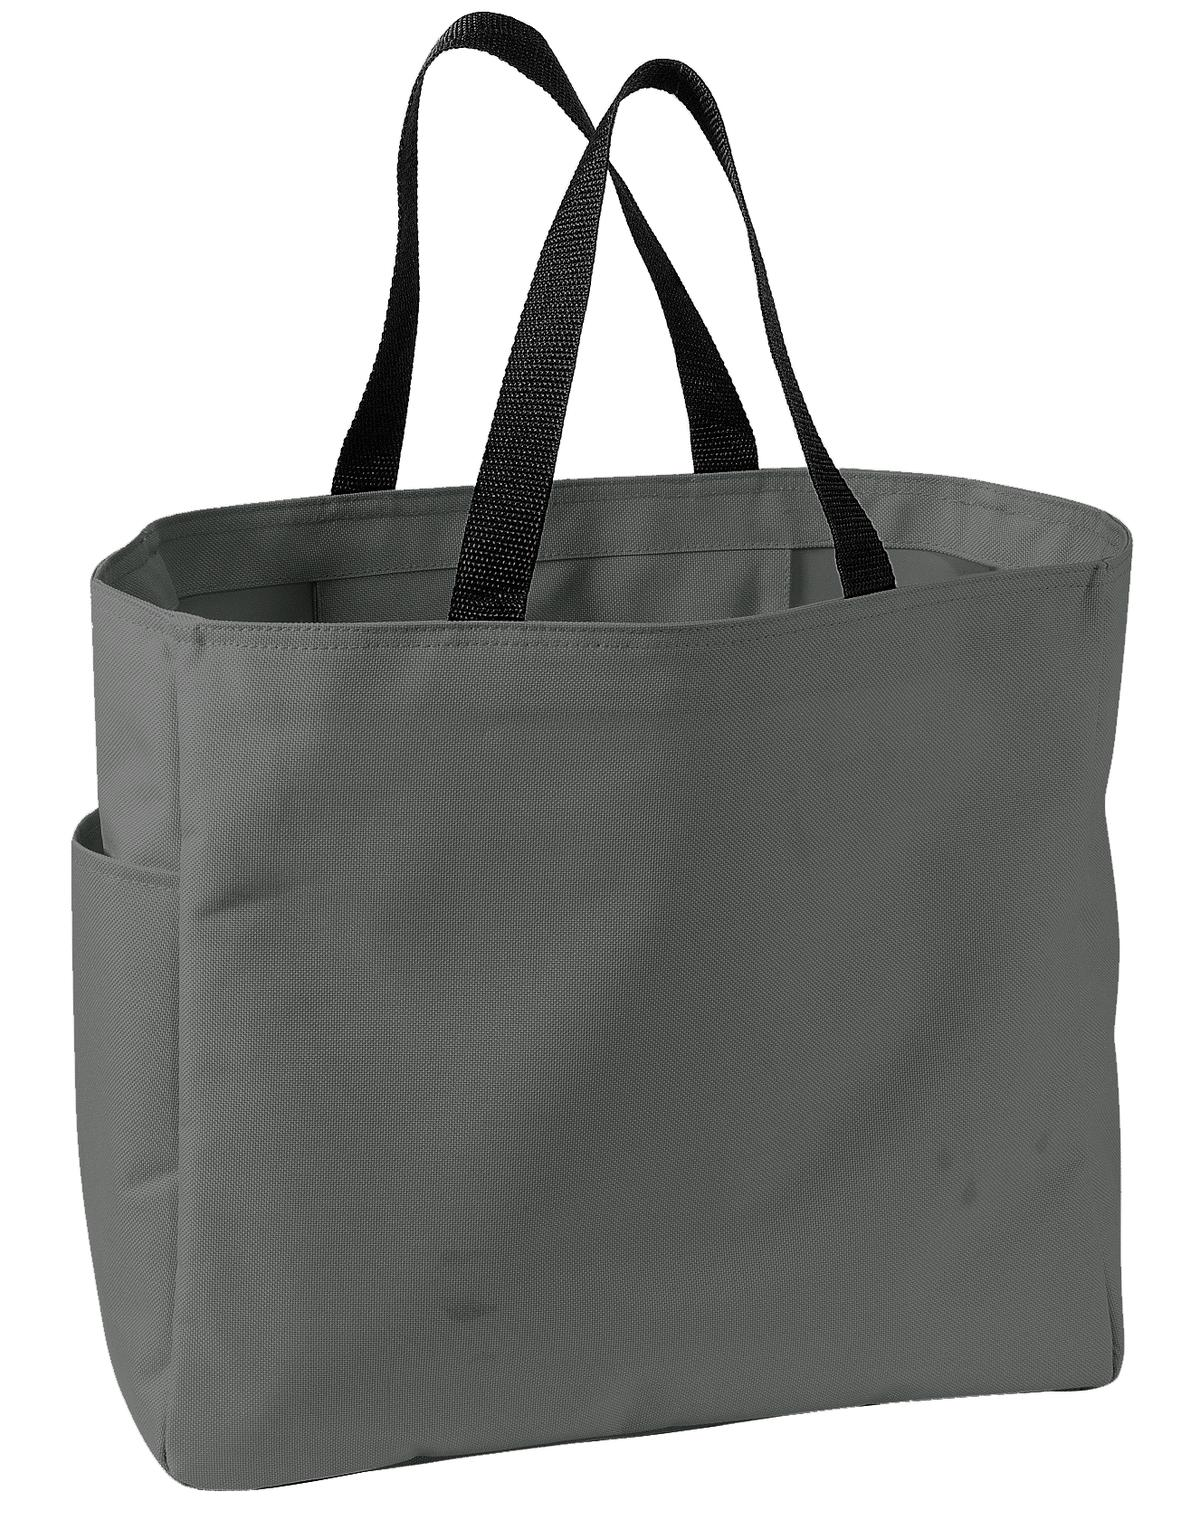 Port Authority ®  -  Essential Tote.  B0750 - Charcoal